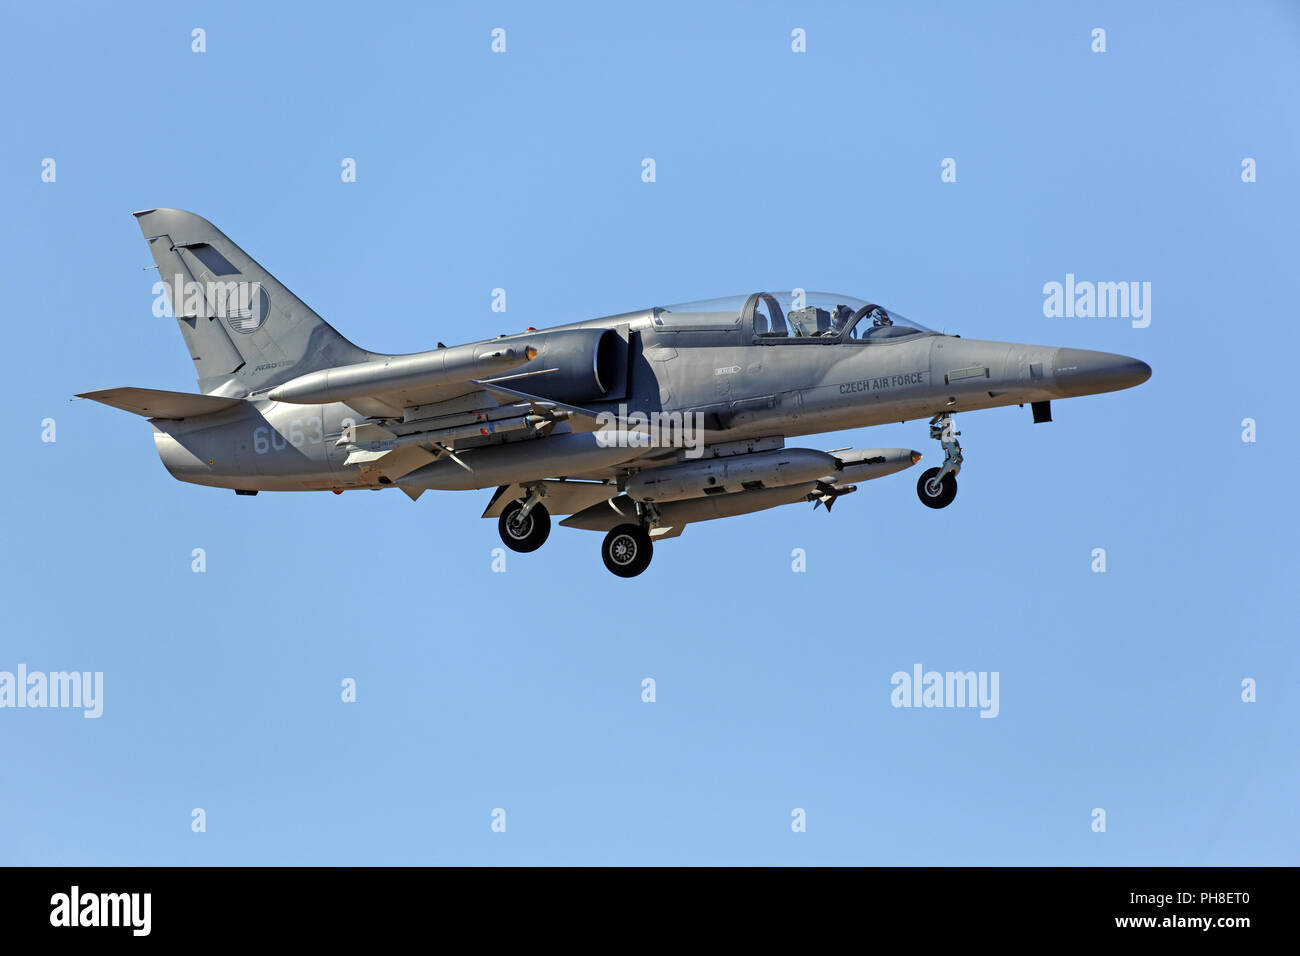 20. CIAF 2013: Aero L-159 der tschech. Luftwaffe. Stock Photo